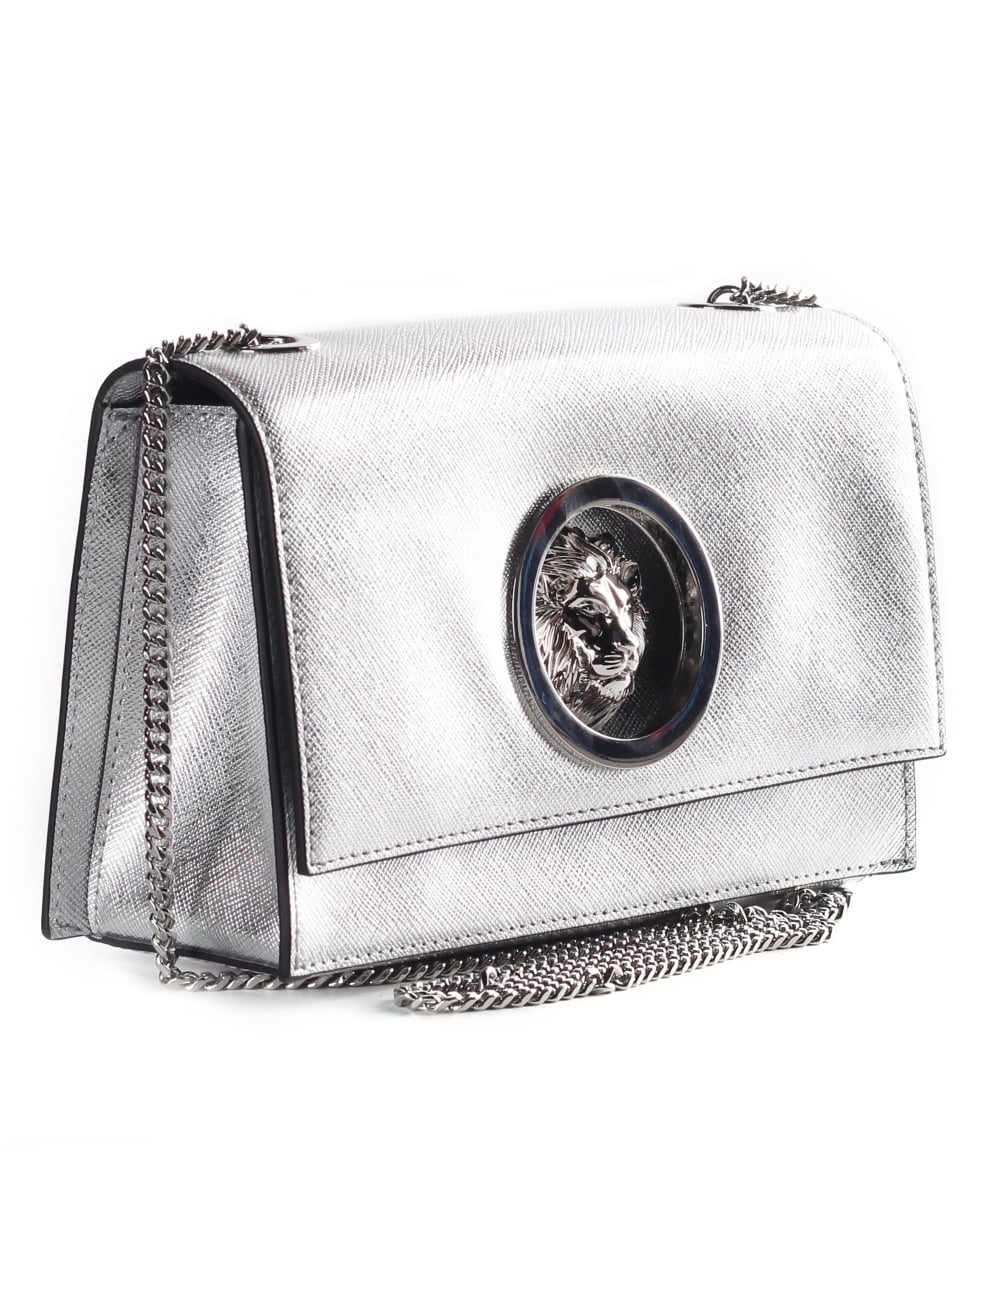 b4e1f02217 Versus Versace Lion Head Women s Shoulder Bag